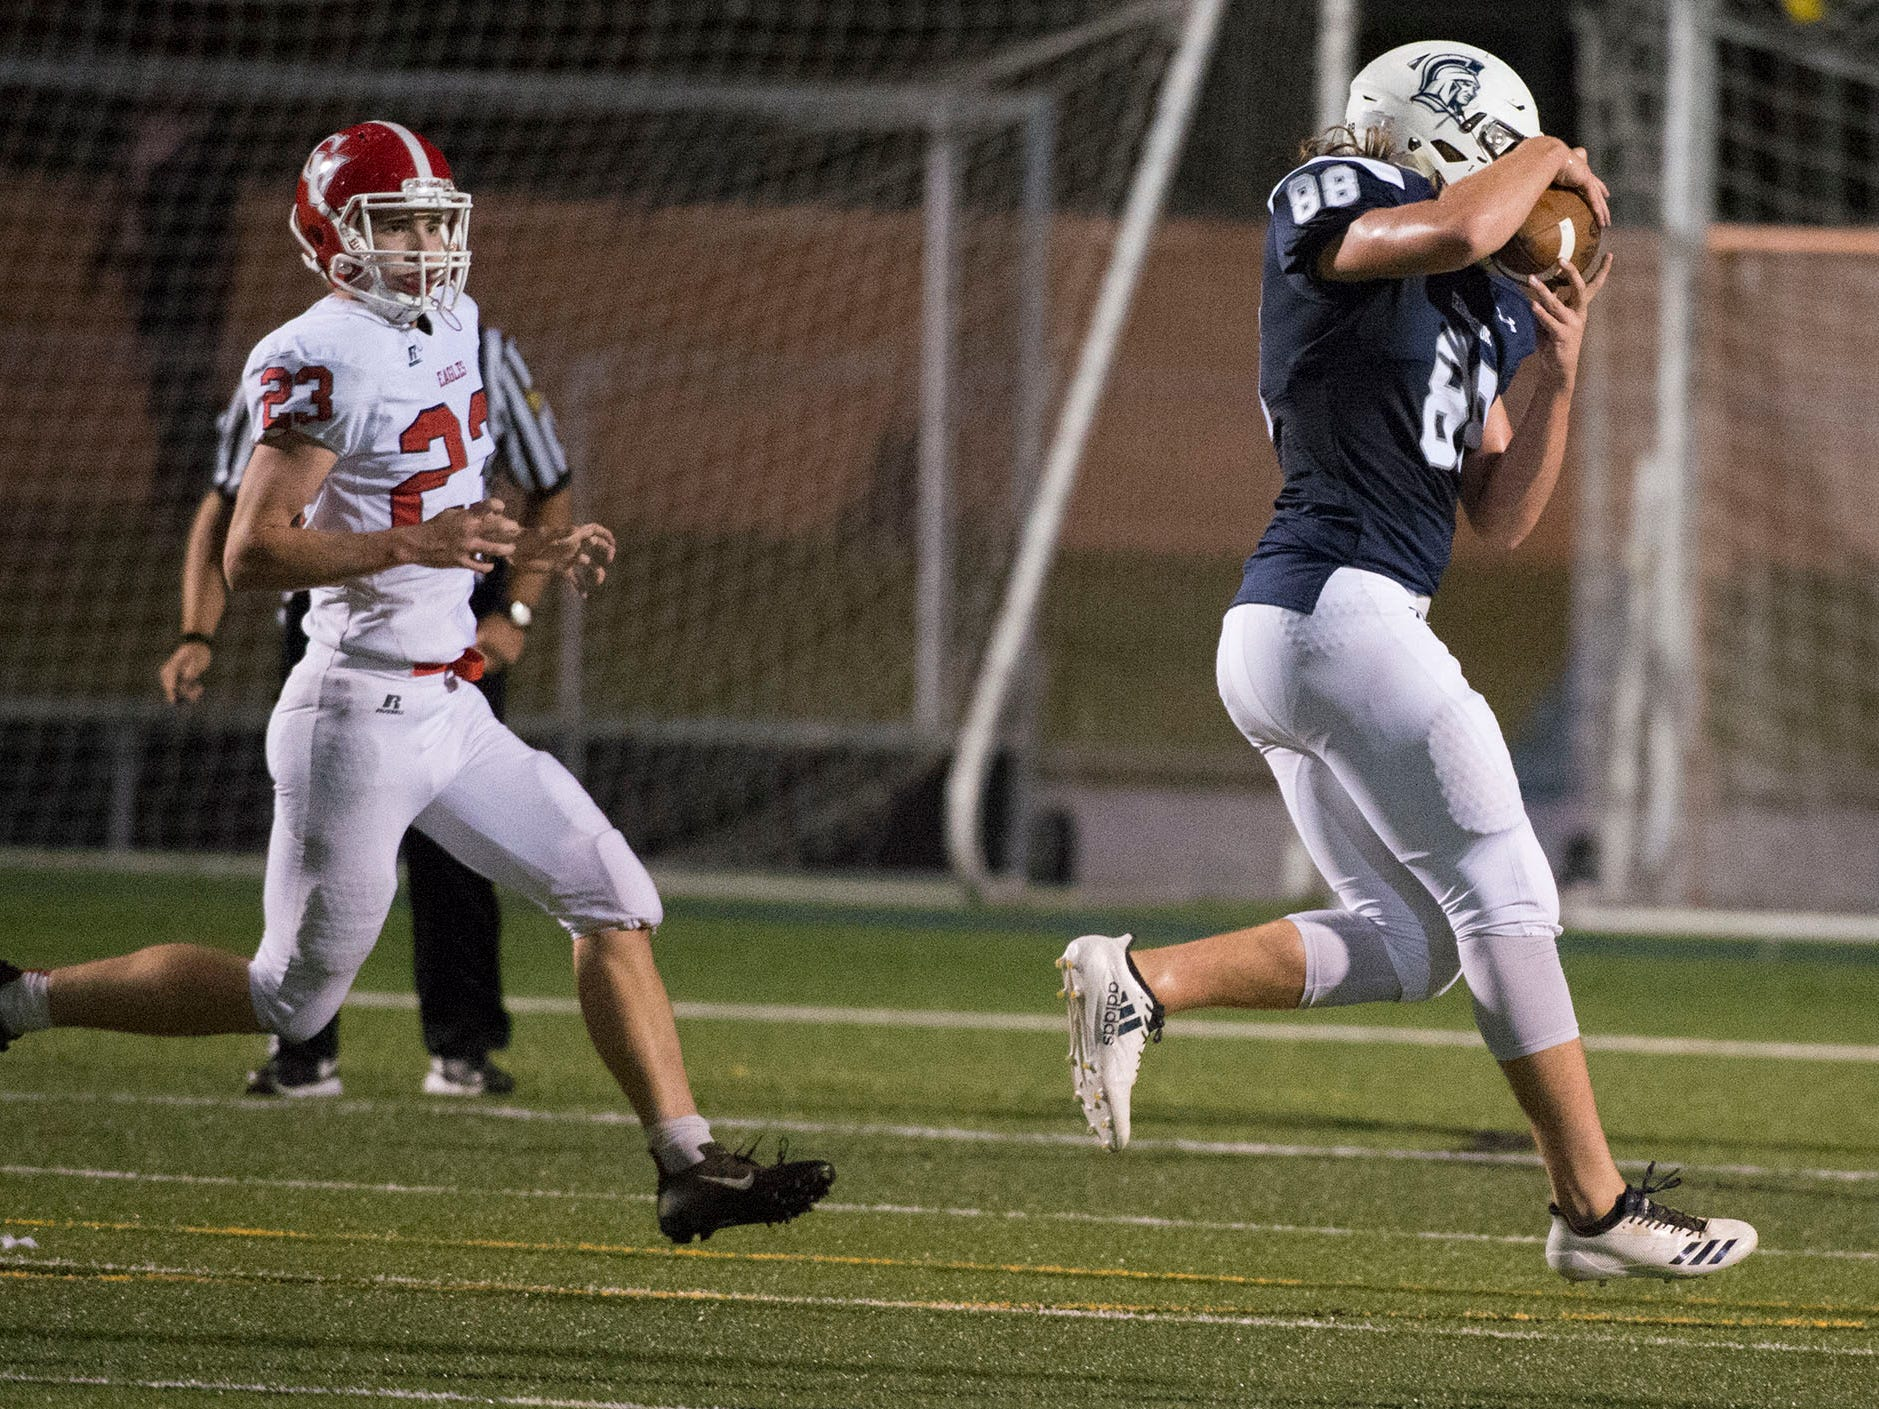 Chambersburg's Garner Funk (88) catches a pass and scores fot the Trojans. Chambersburg Trojans are 5-1 after a homecoming victory over Cumberland Valley 28-14 in PIAA football on Friday, Sept. 28, 2018.